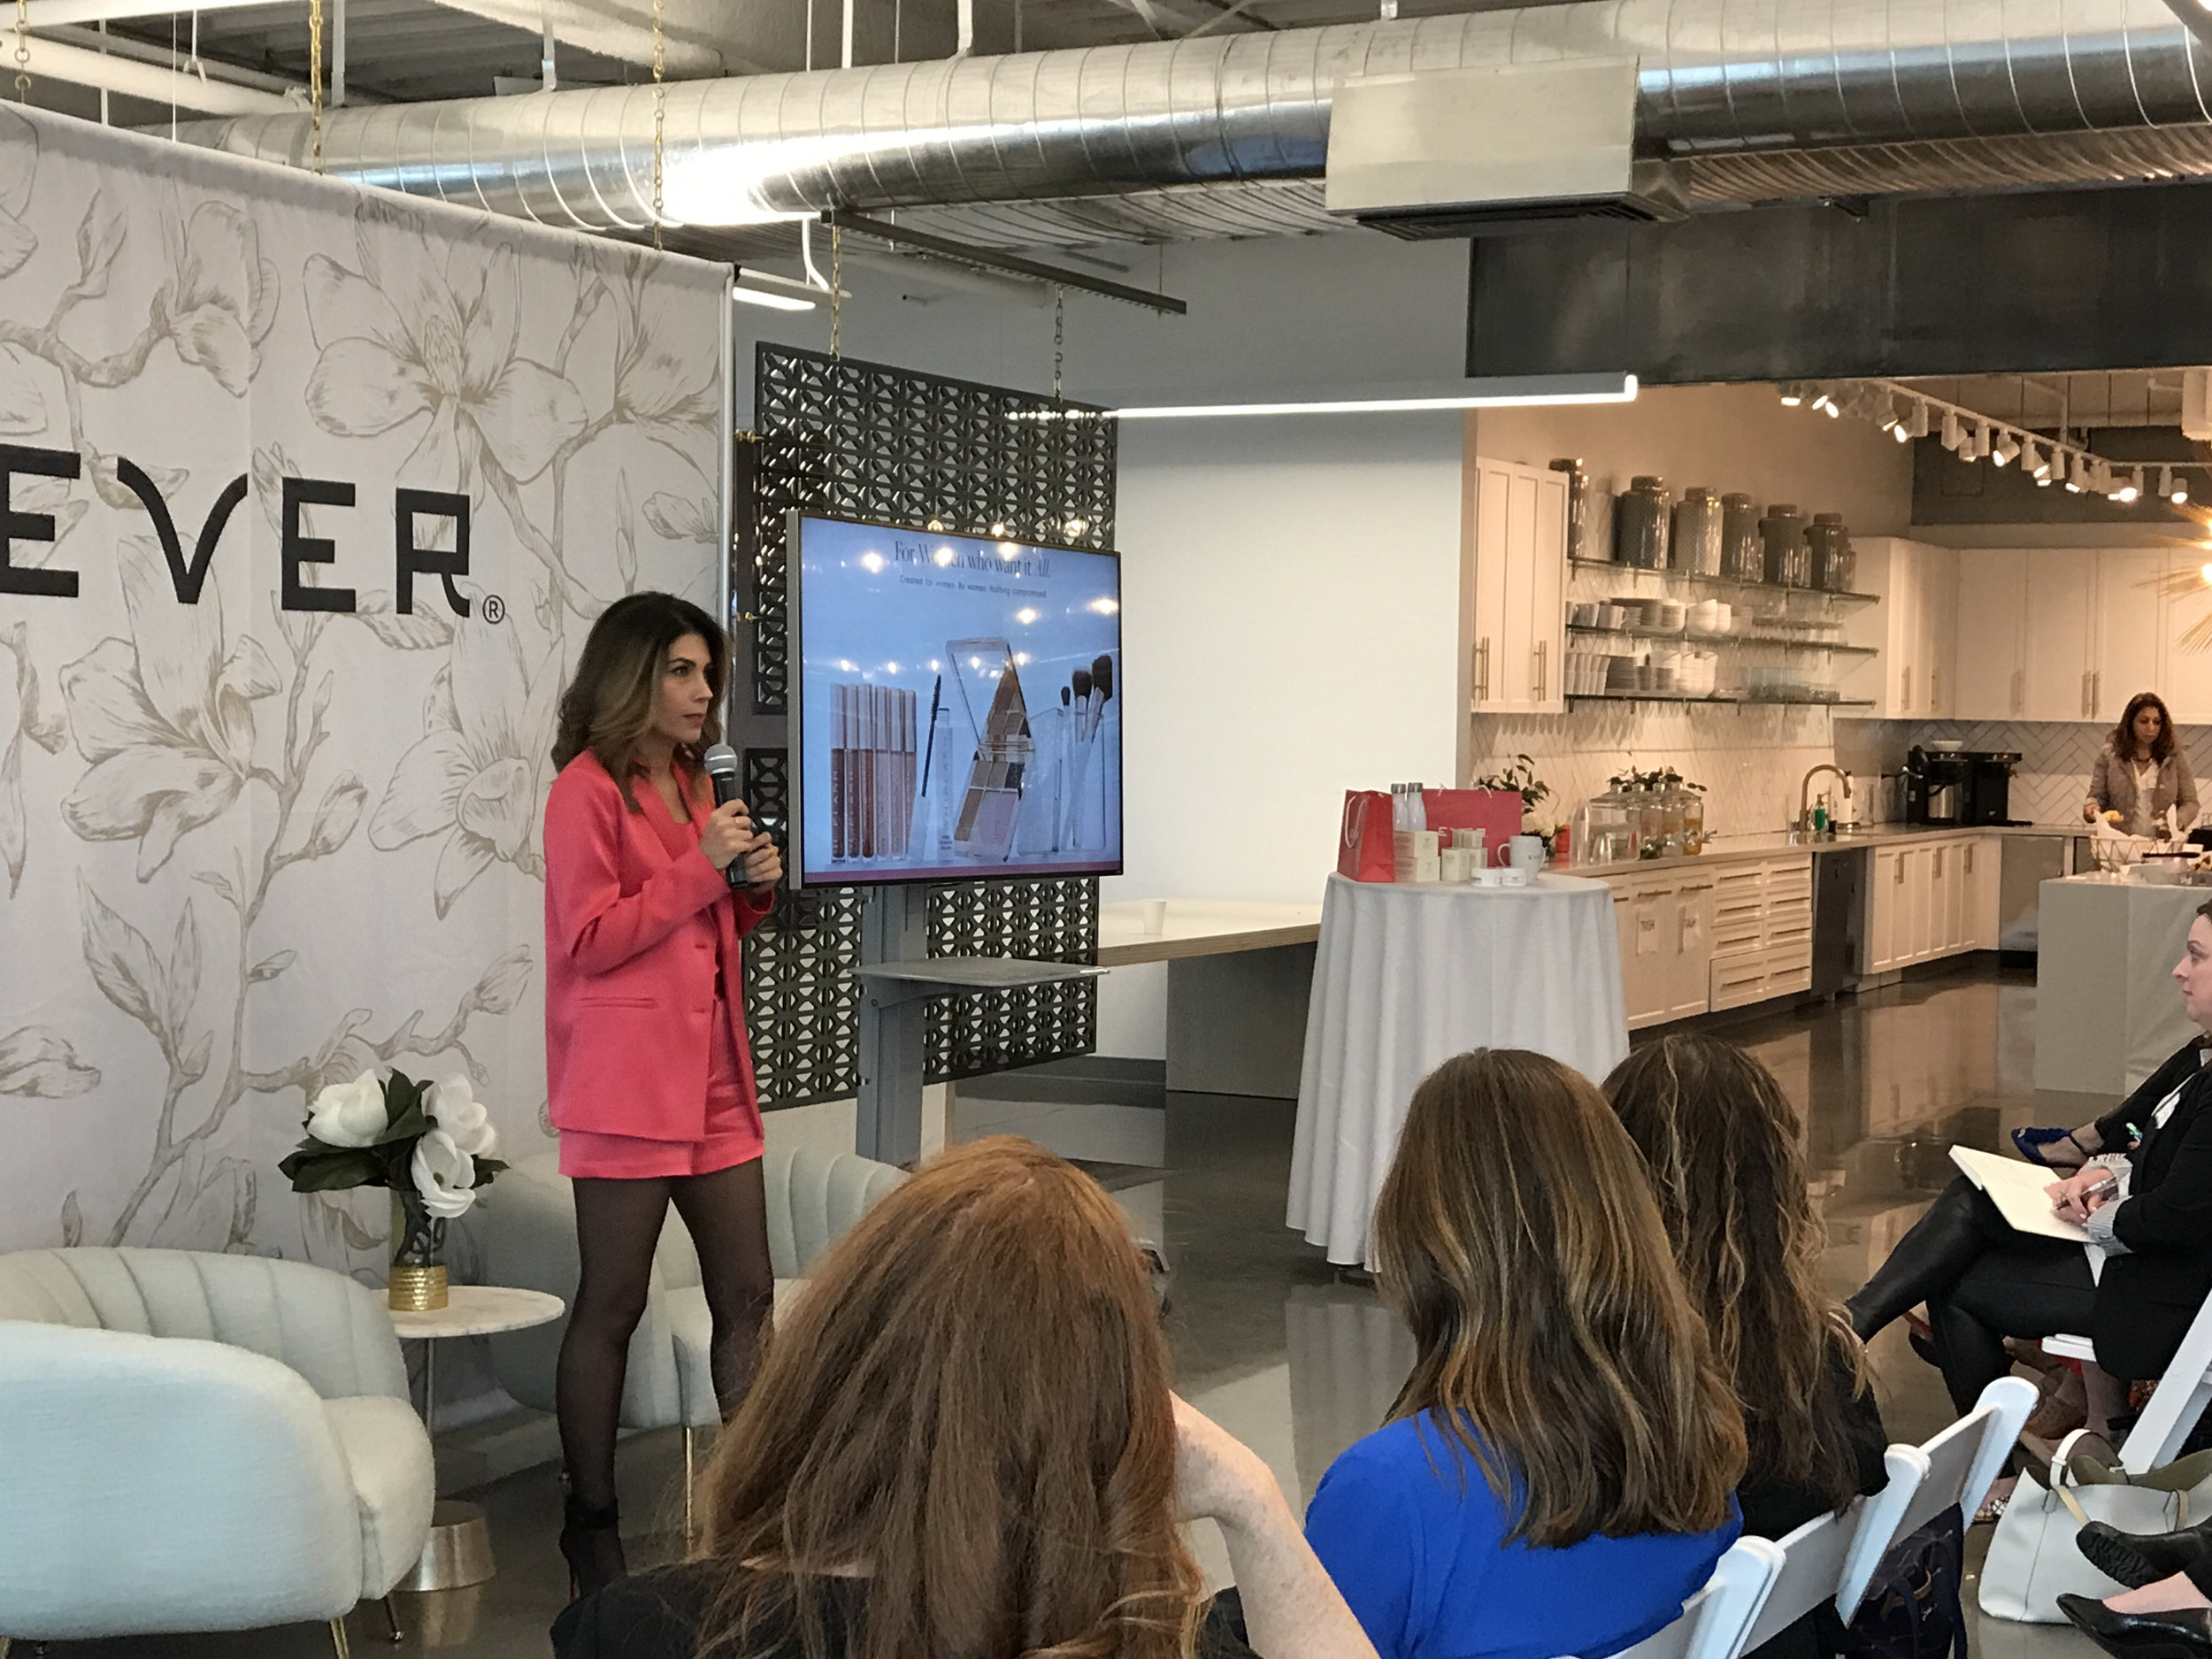 The moment we were all waiting for — our GM Ani gave attendees the first look at EVER Makeup from our San Francisco Home Office (and gave us some serious outfit envy, too)!